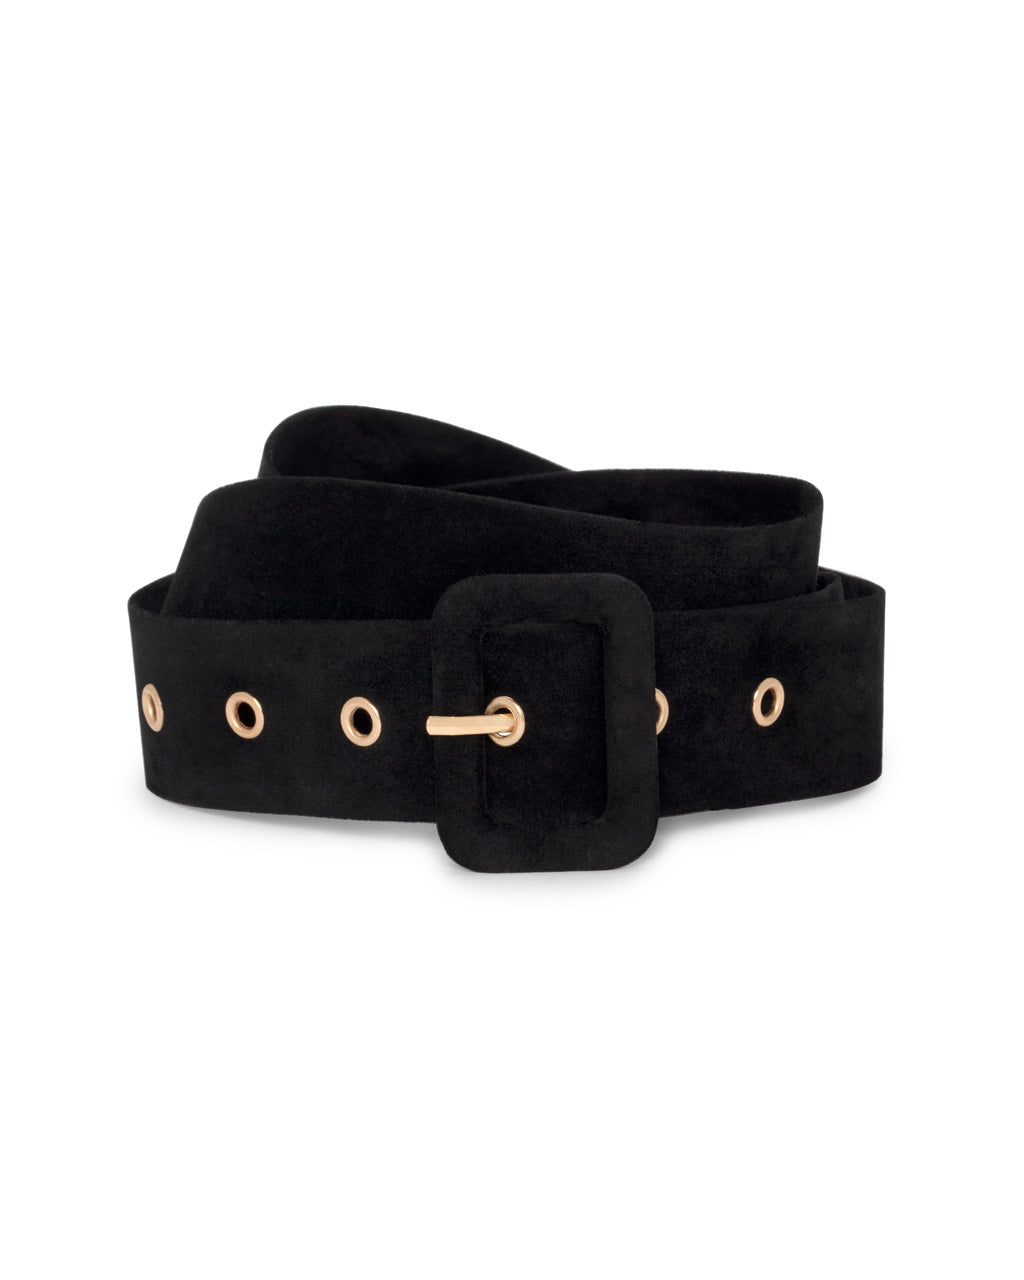 Black belt with square buckle.